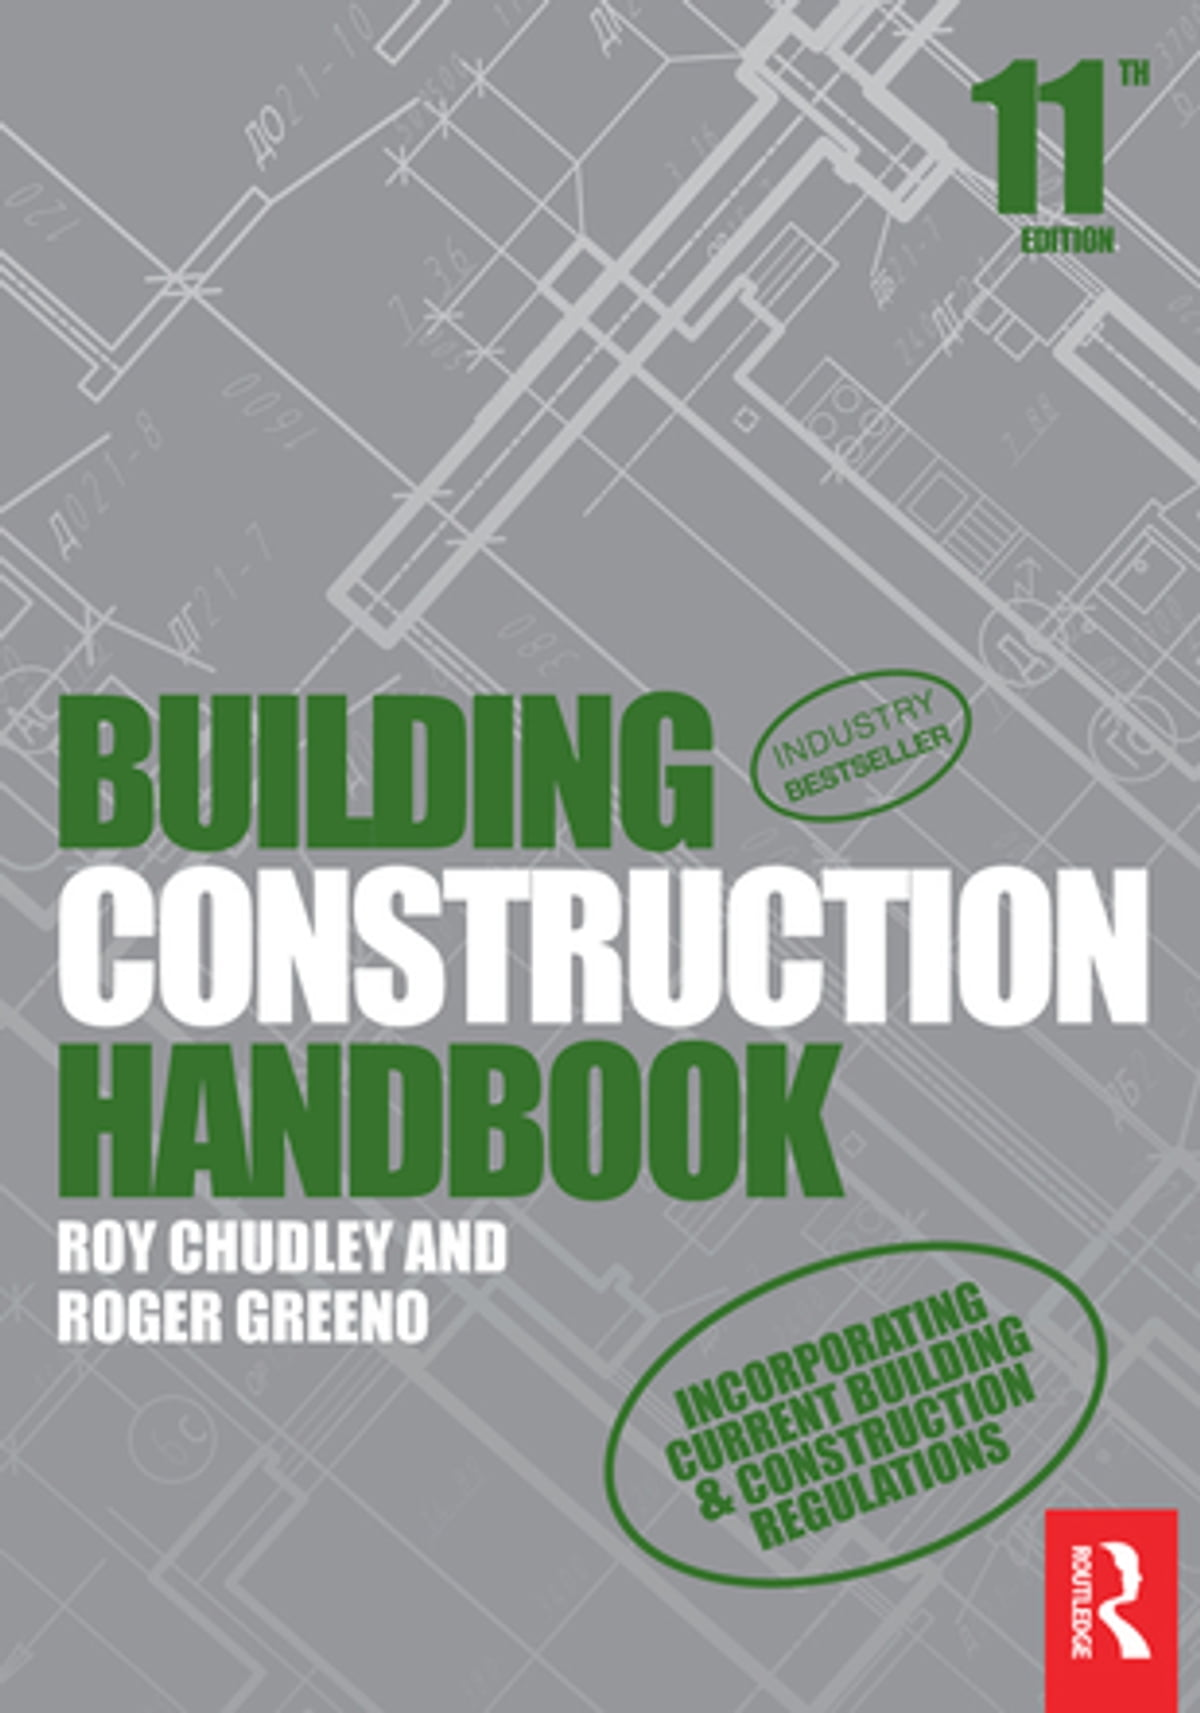 Illustrated building download construction ebook free